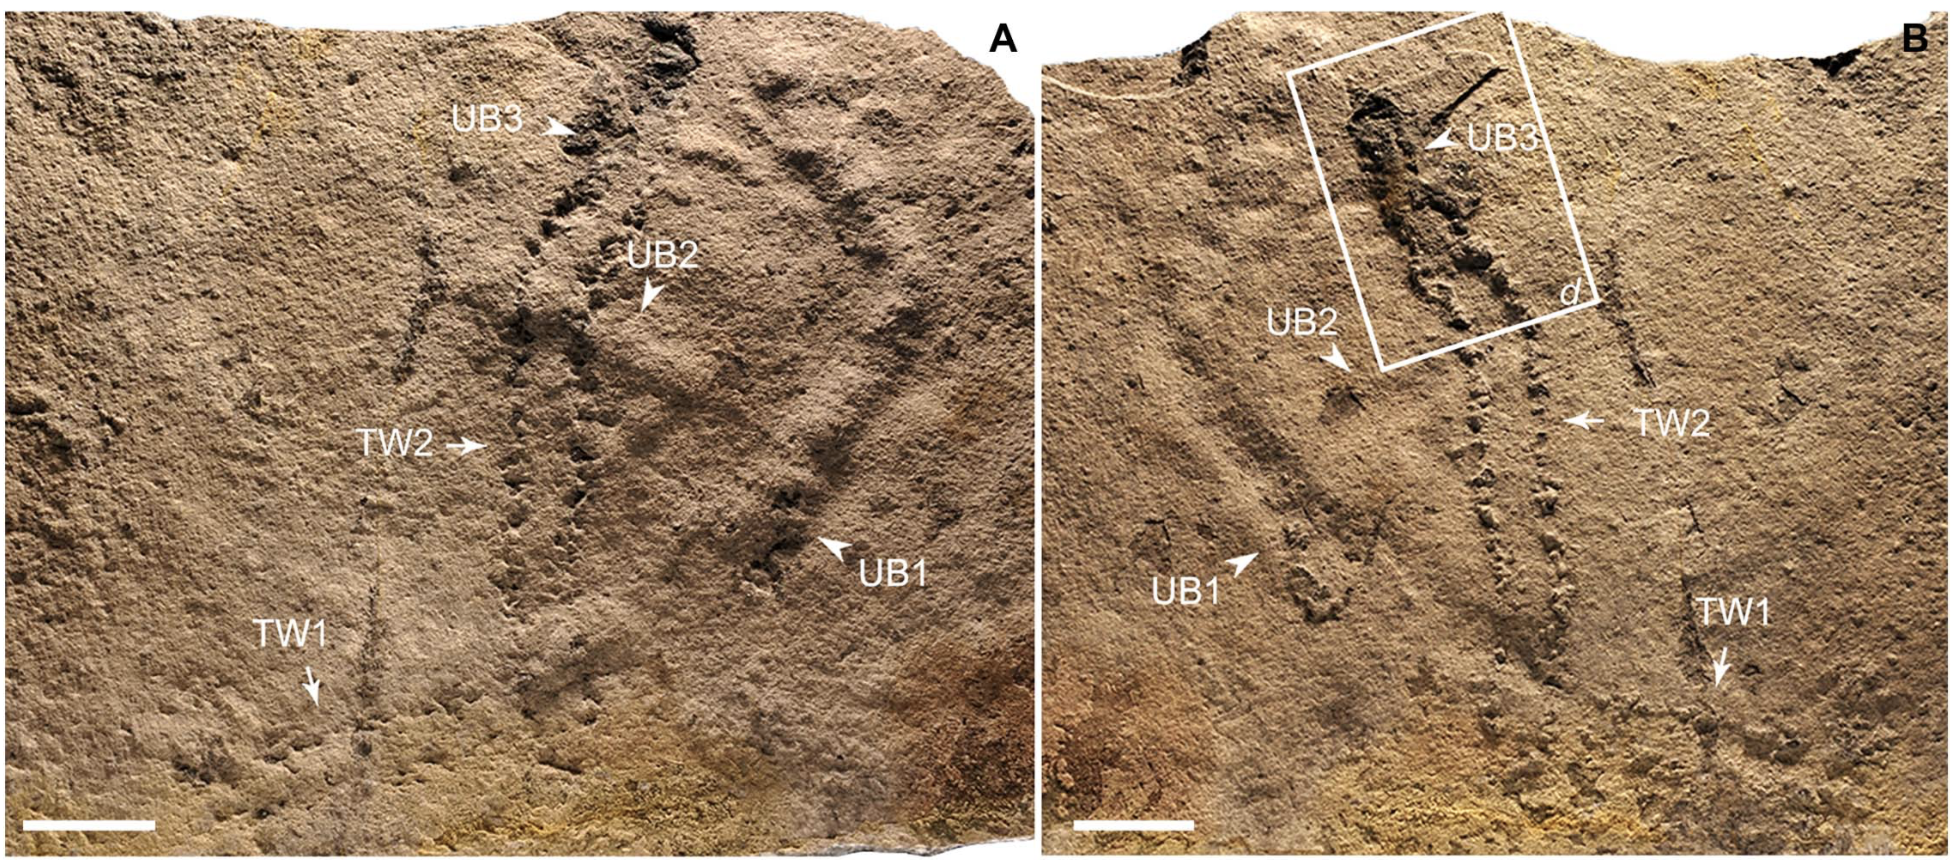 These Are The Oldest Known Footprints On The Planet